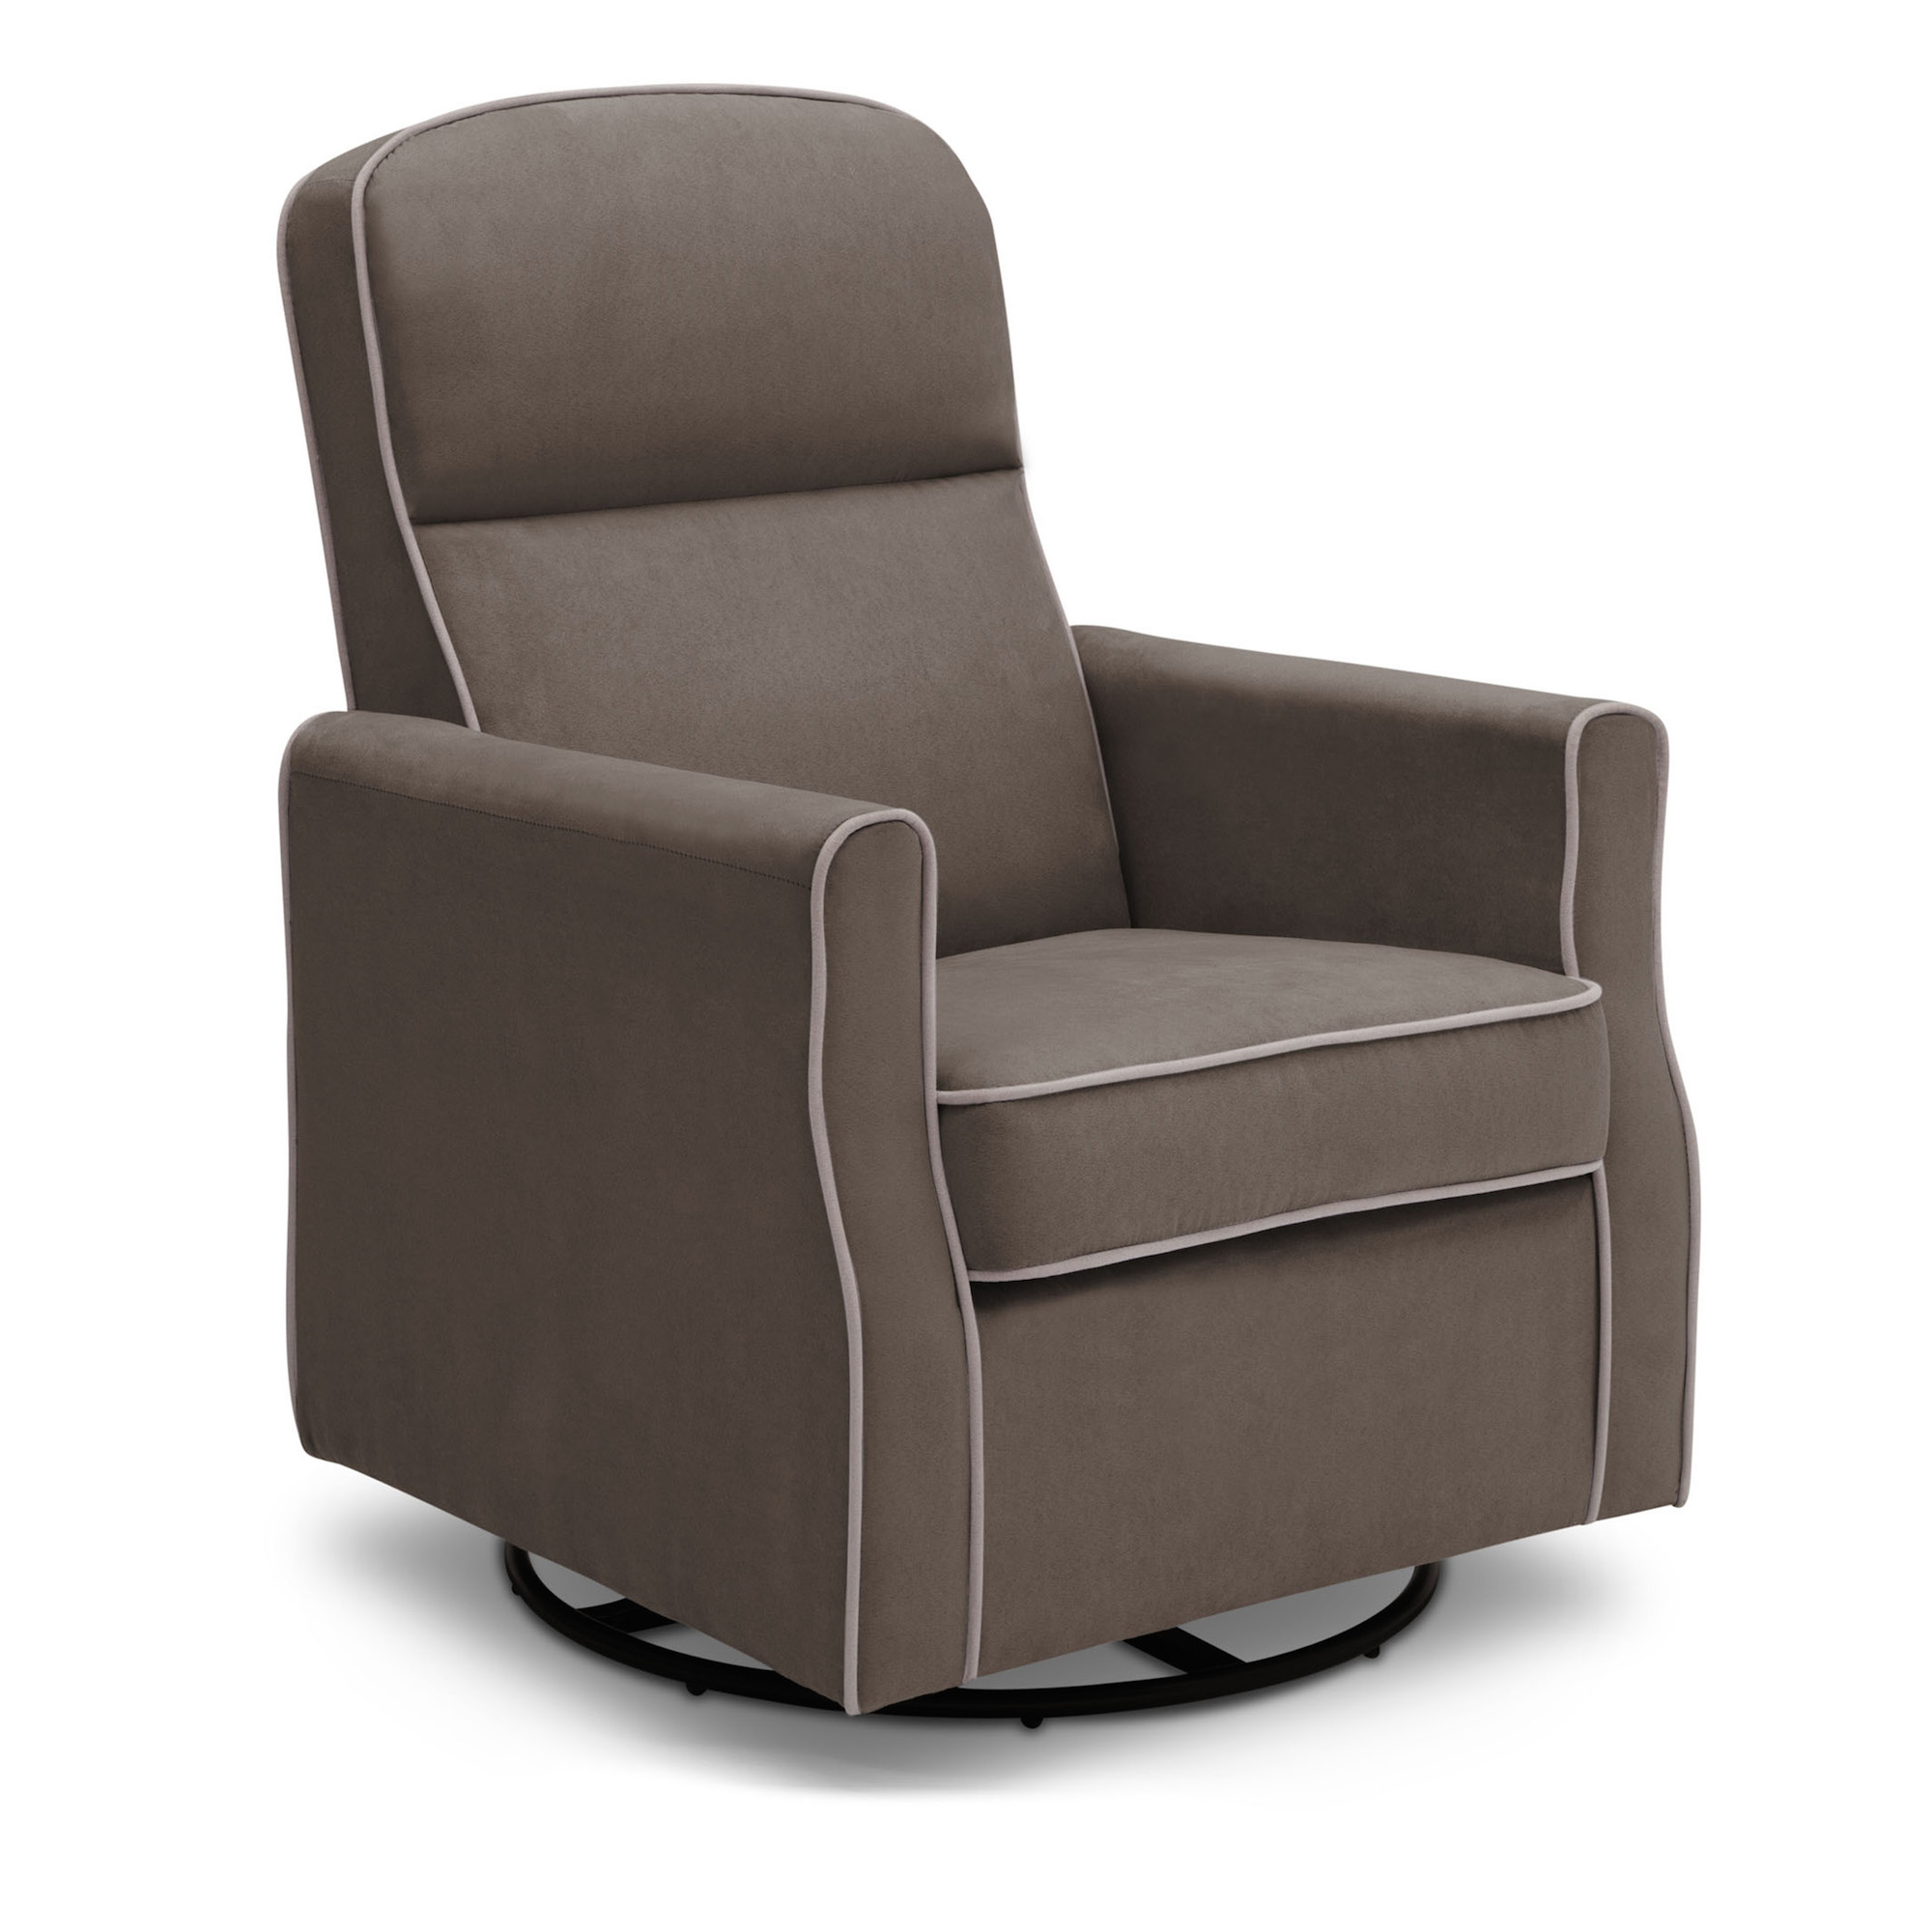 Delta Children Clair SLIM Nursery Glider Swivel Rocker Chair by Delta Children